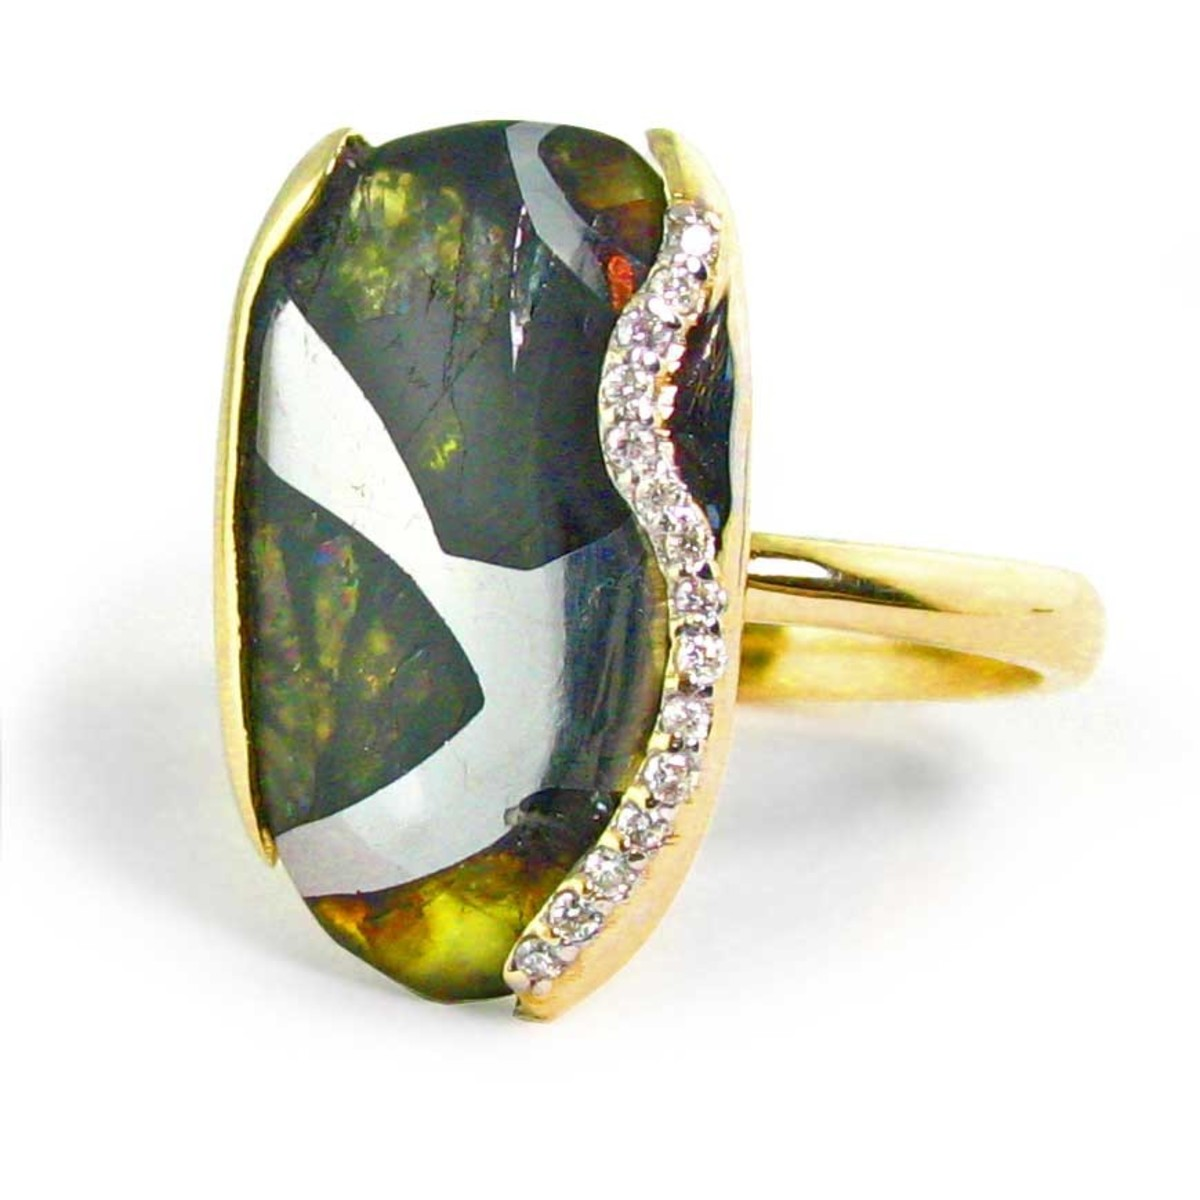 Cosmic Jewelry: Items Made From Pallasite and Other Meteors